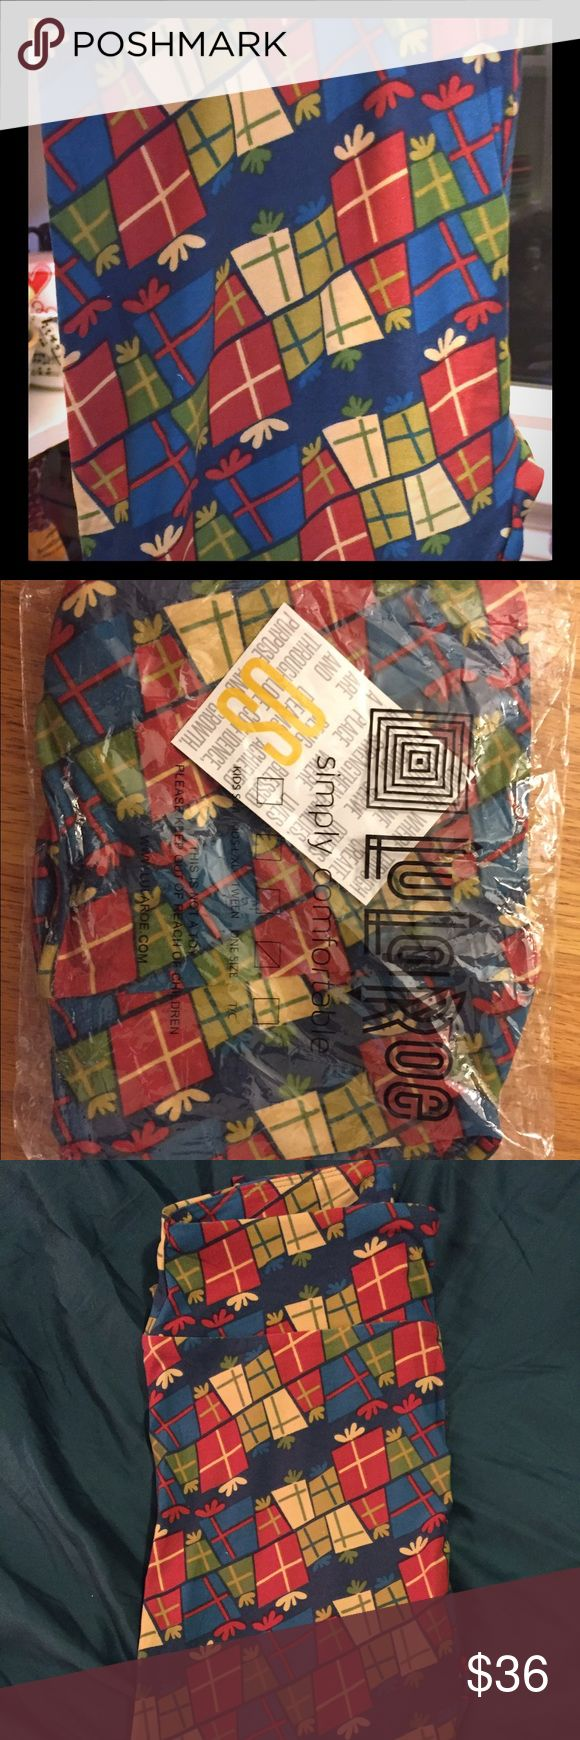 OS Brand New LulaRoe Christmas Holiday Leggings These leggings have never even been tried on...I'll mail them to you with the original bag and tag! I snatched them in a hunger games style Facebook sale, then found Christmas leggings I like better. OS fits sizes 2-12. Stretchy buttery soft Christmas leggings! LuLaRoe Pants Leggings